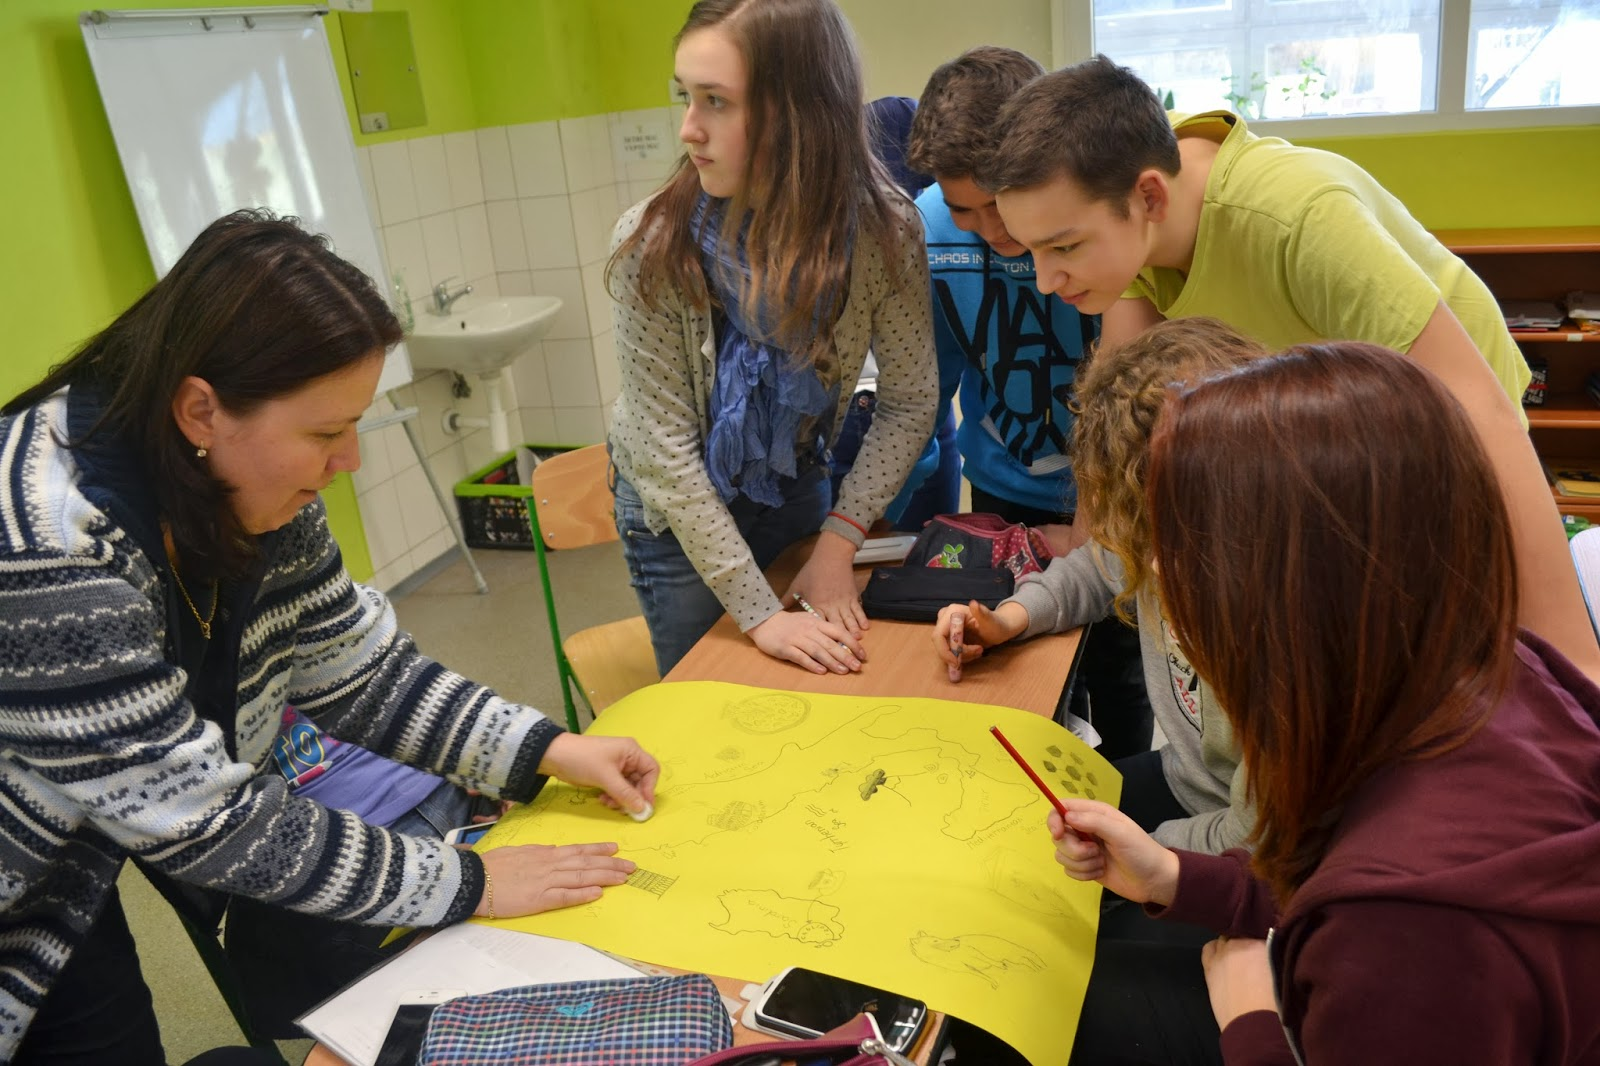 IT'S ABOUT US, IT'S ABOUT EUROPE!: Slovak students were making ...